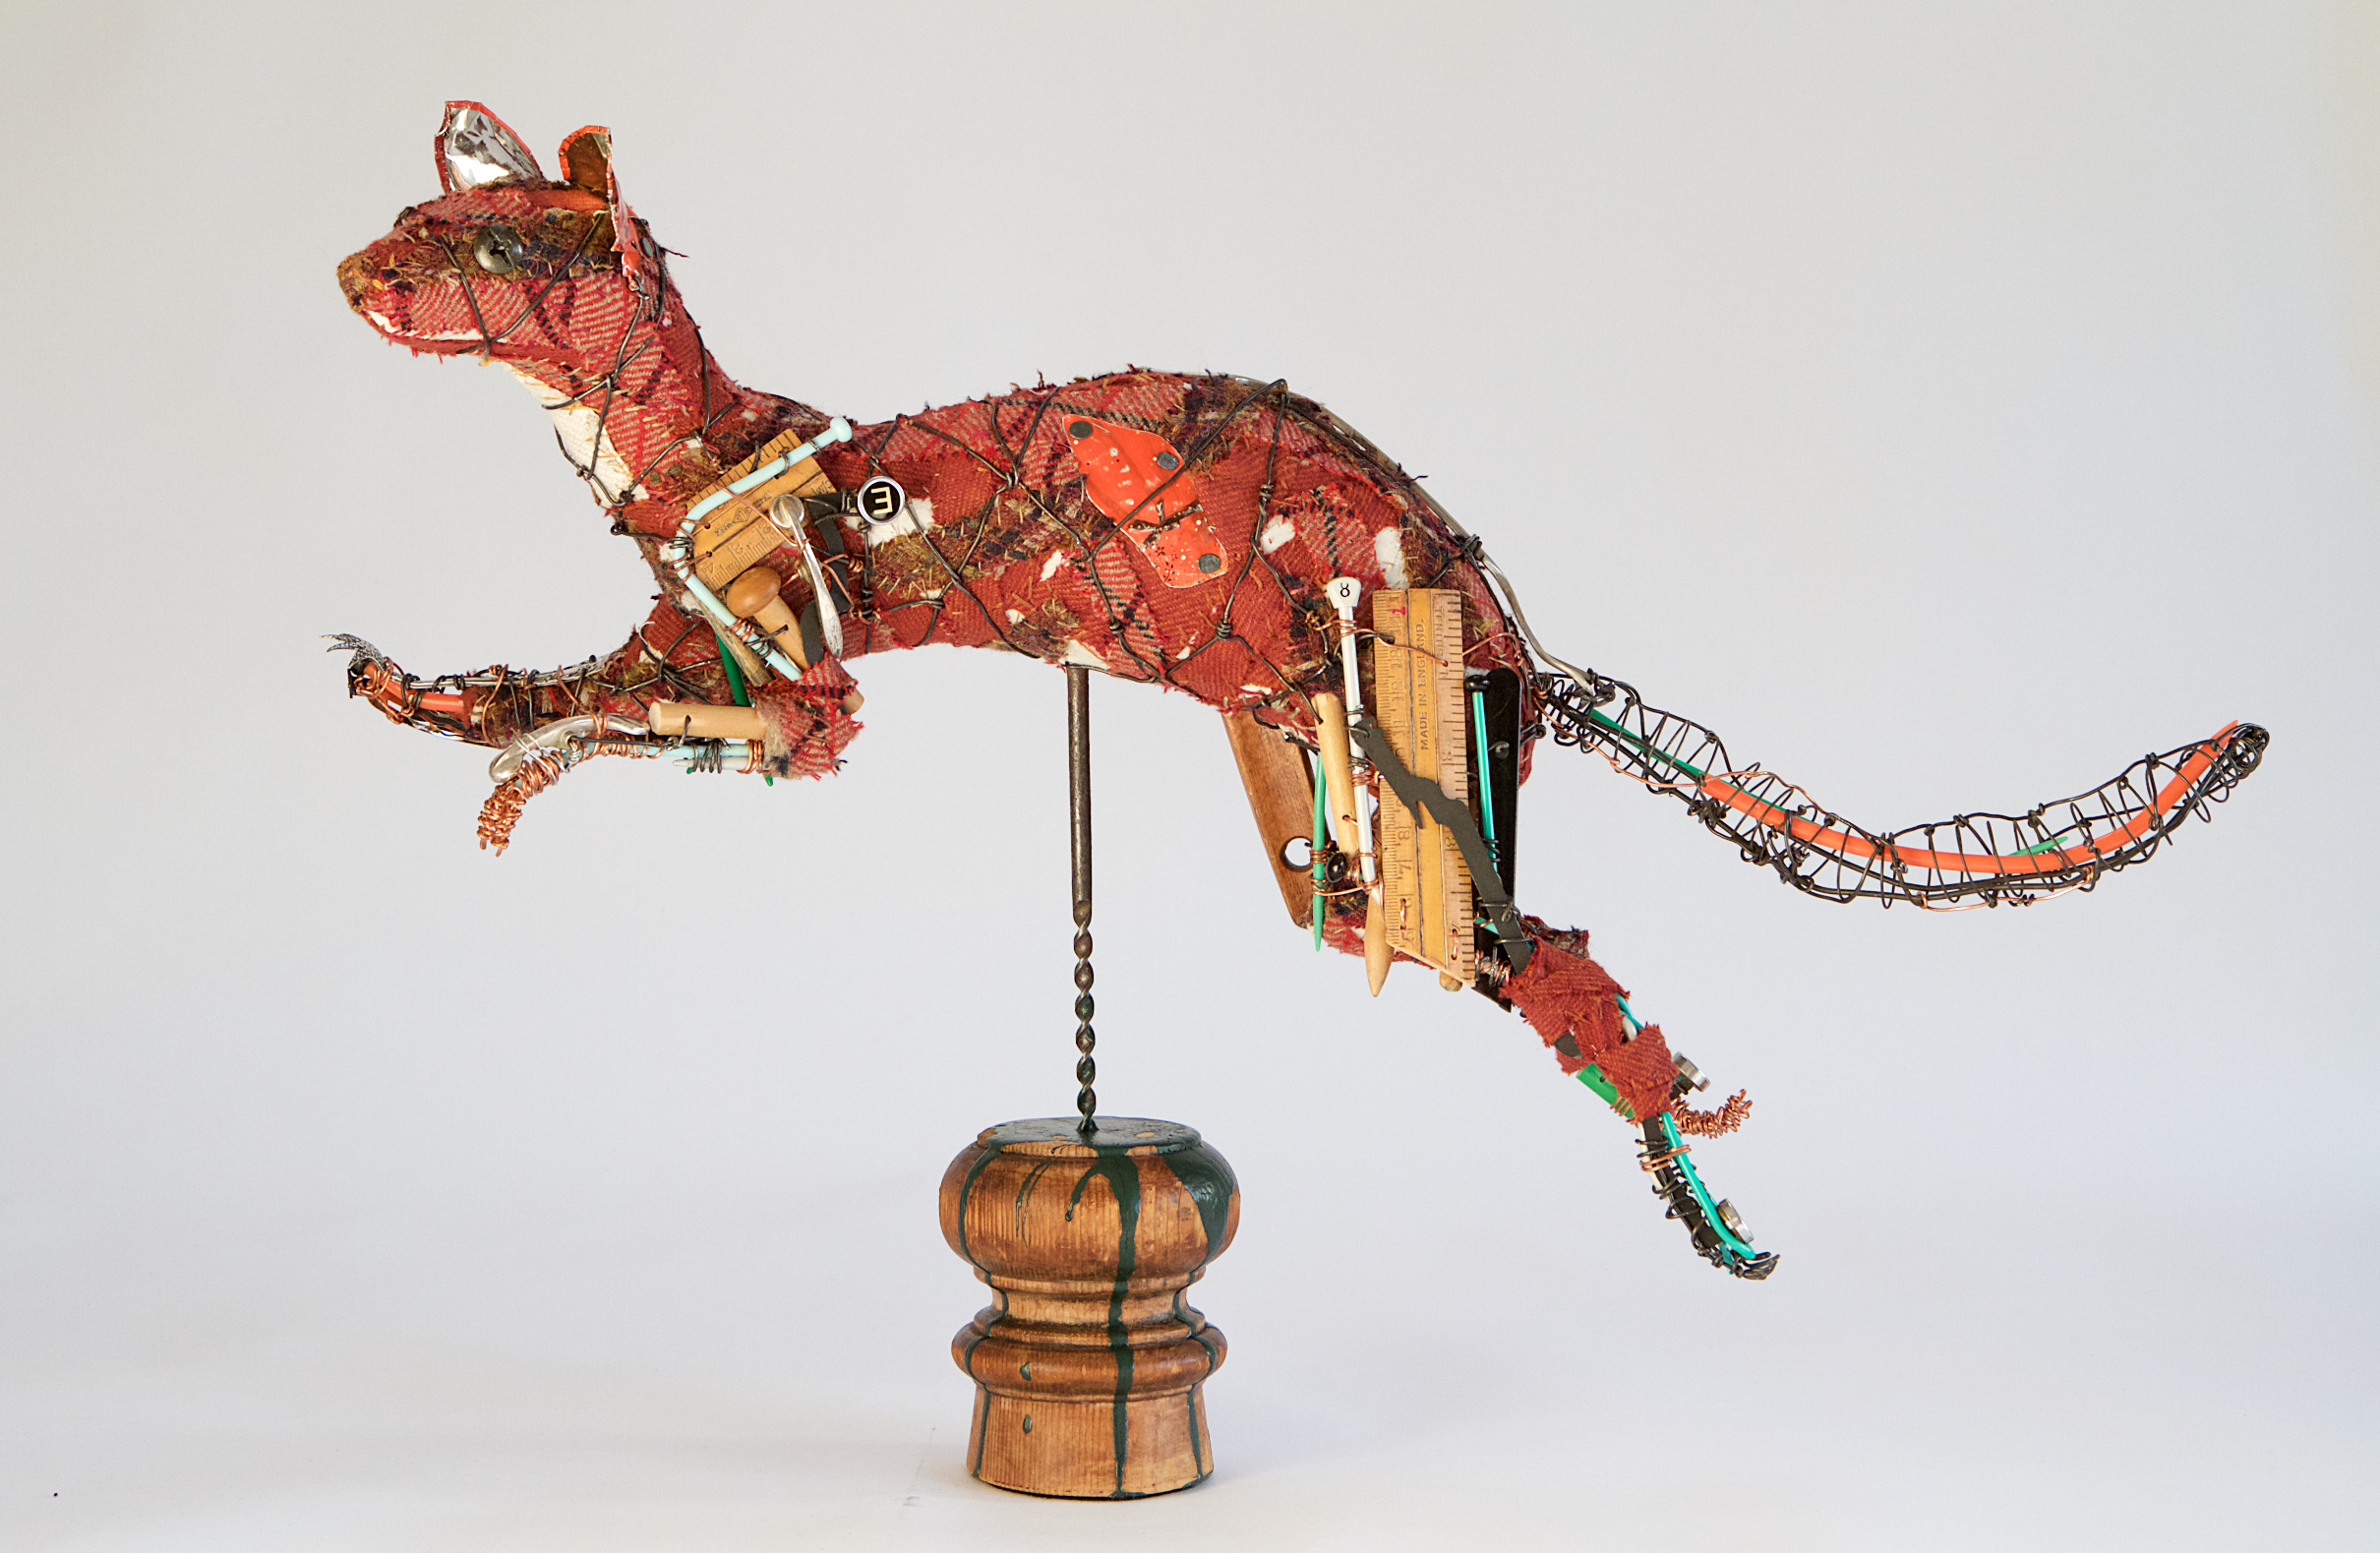 'Leaping Pine Marten' a life-size wire and expanded foam form covered in Scottish tweeds and 'found' objects